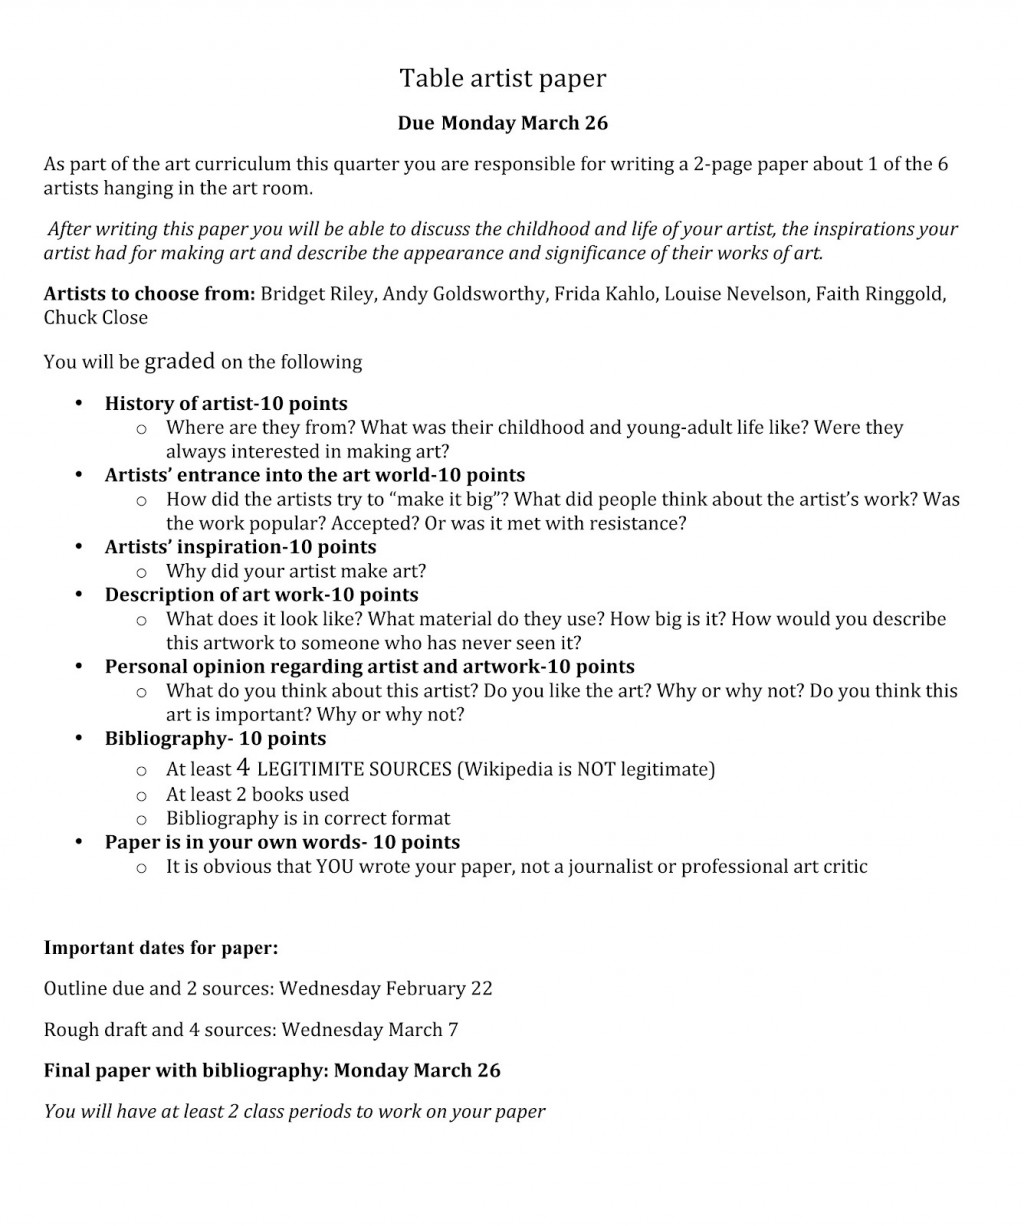 013 Tableartistpaper Middle School Research Paper Phenomenal Questions Science Topics Large